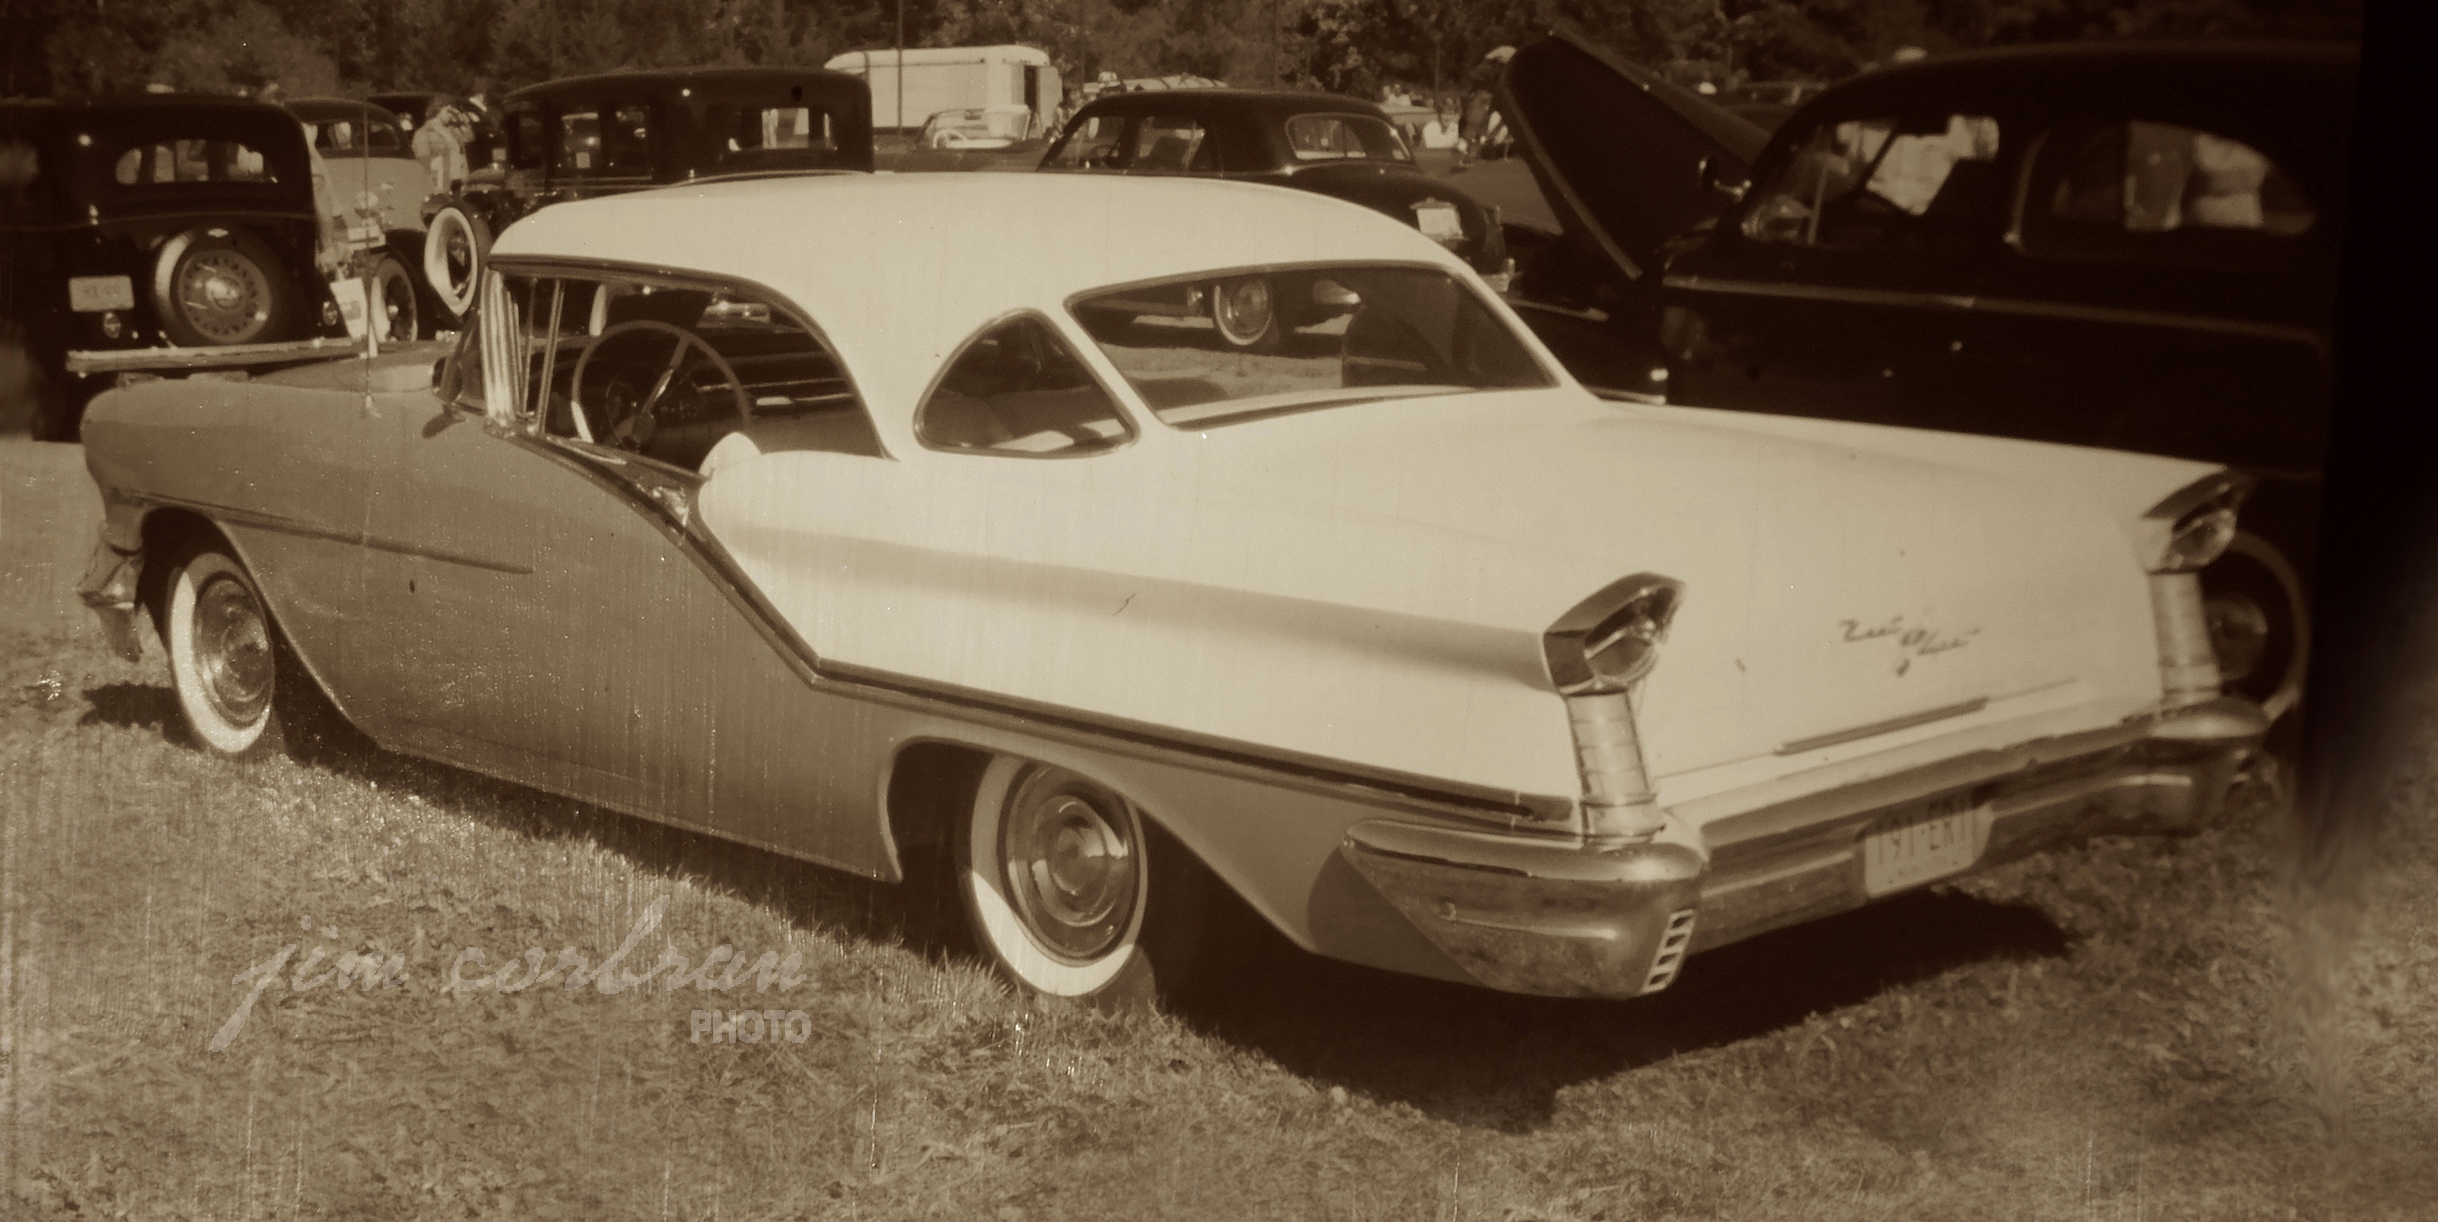 RealRides of WNY - 1957 Oldsmobile